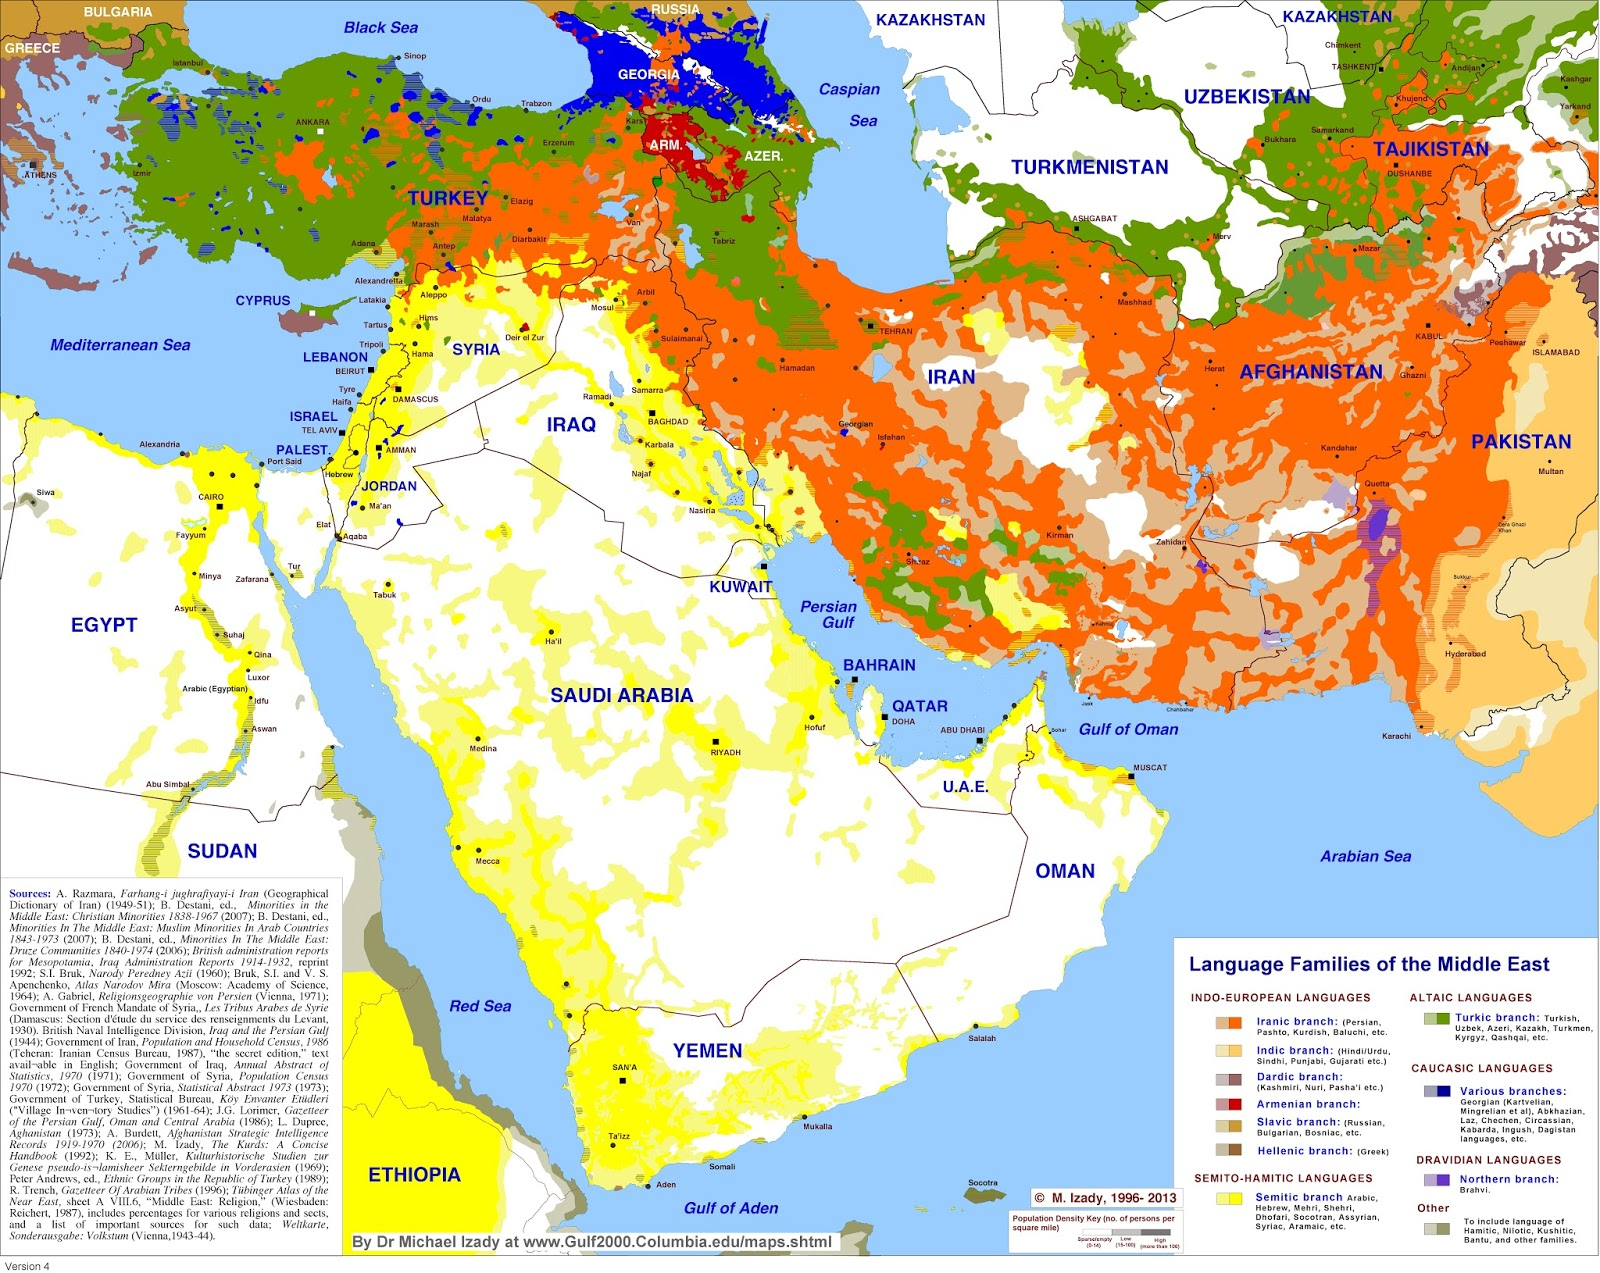 ethnic conflict in the middle east Ethnic conflict john stuart mill, representative government , chapter 16, of nationality, as connected with representative government, 1861 lord acton, nationality, the home and foreign review , 1862.